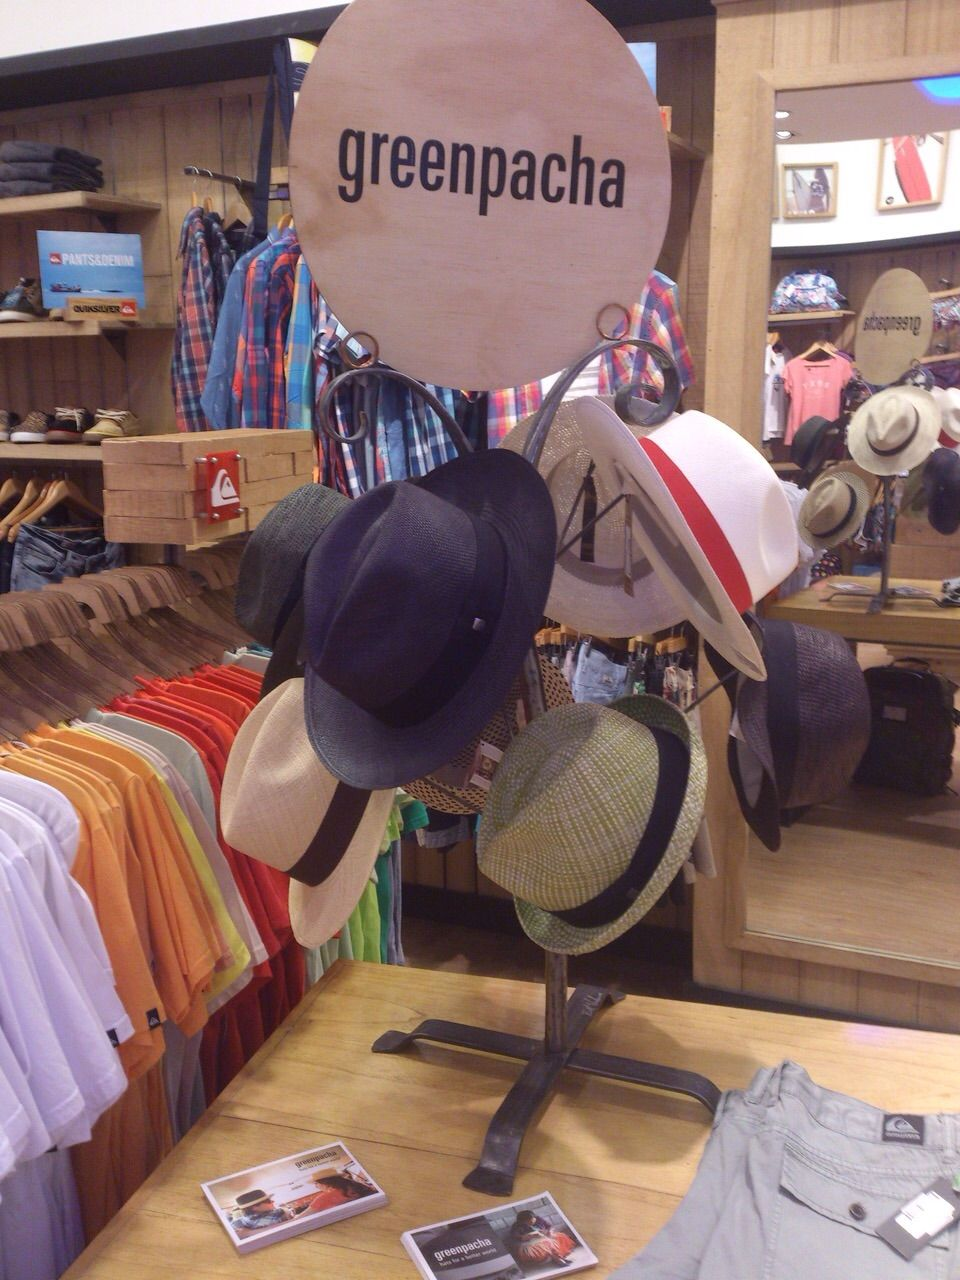 ‪#‎Greenpacha‬ ‪#‎argentina‬ ‪#‎summer‬ ‪#‎ecoline‬ #2015 Stores: quiksilver- Roxy - DC  Buenos Aires - Mar del Plata